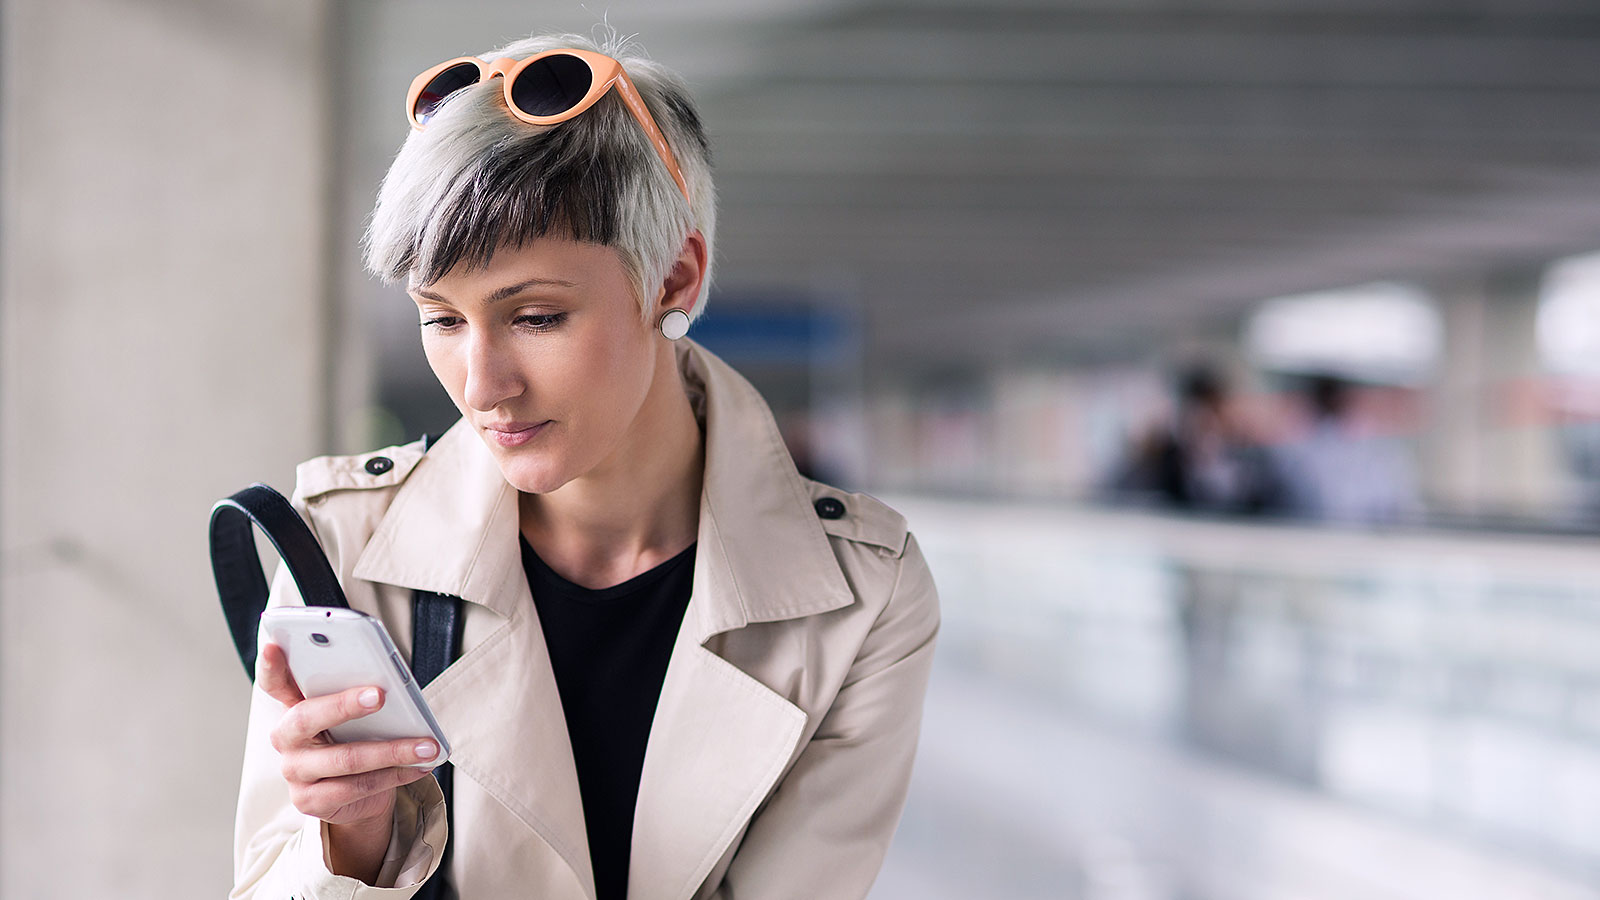 11 must-have travel apps that will you during your next vacation or business trip